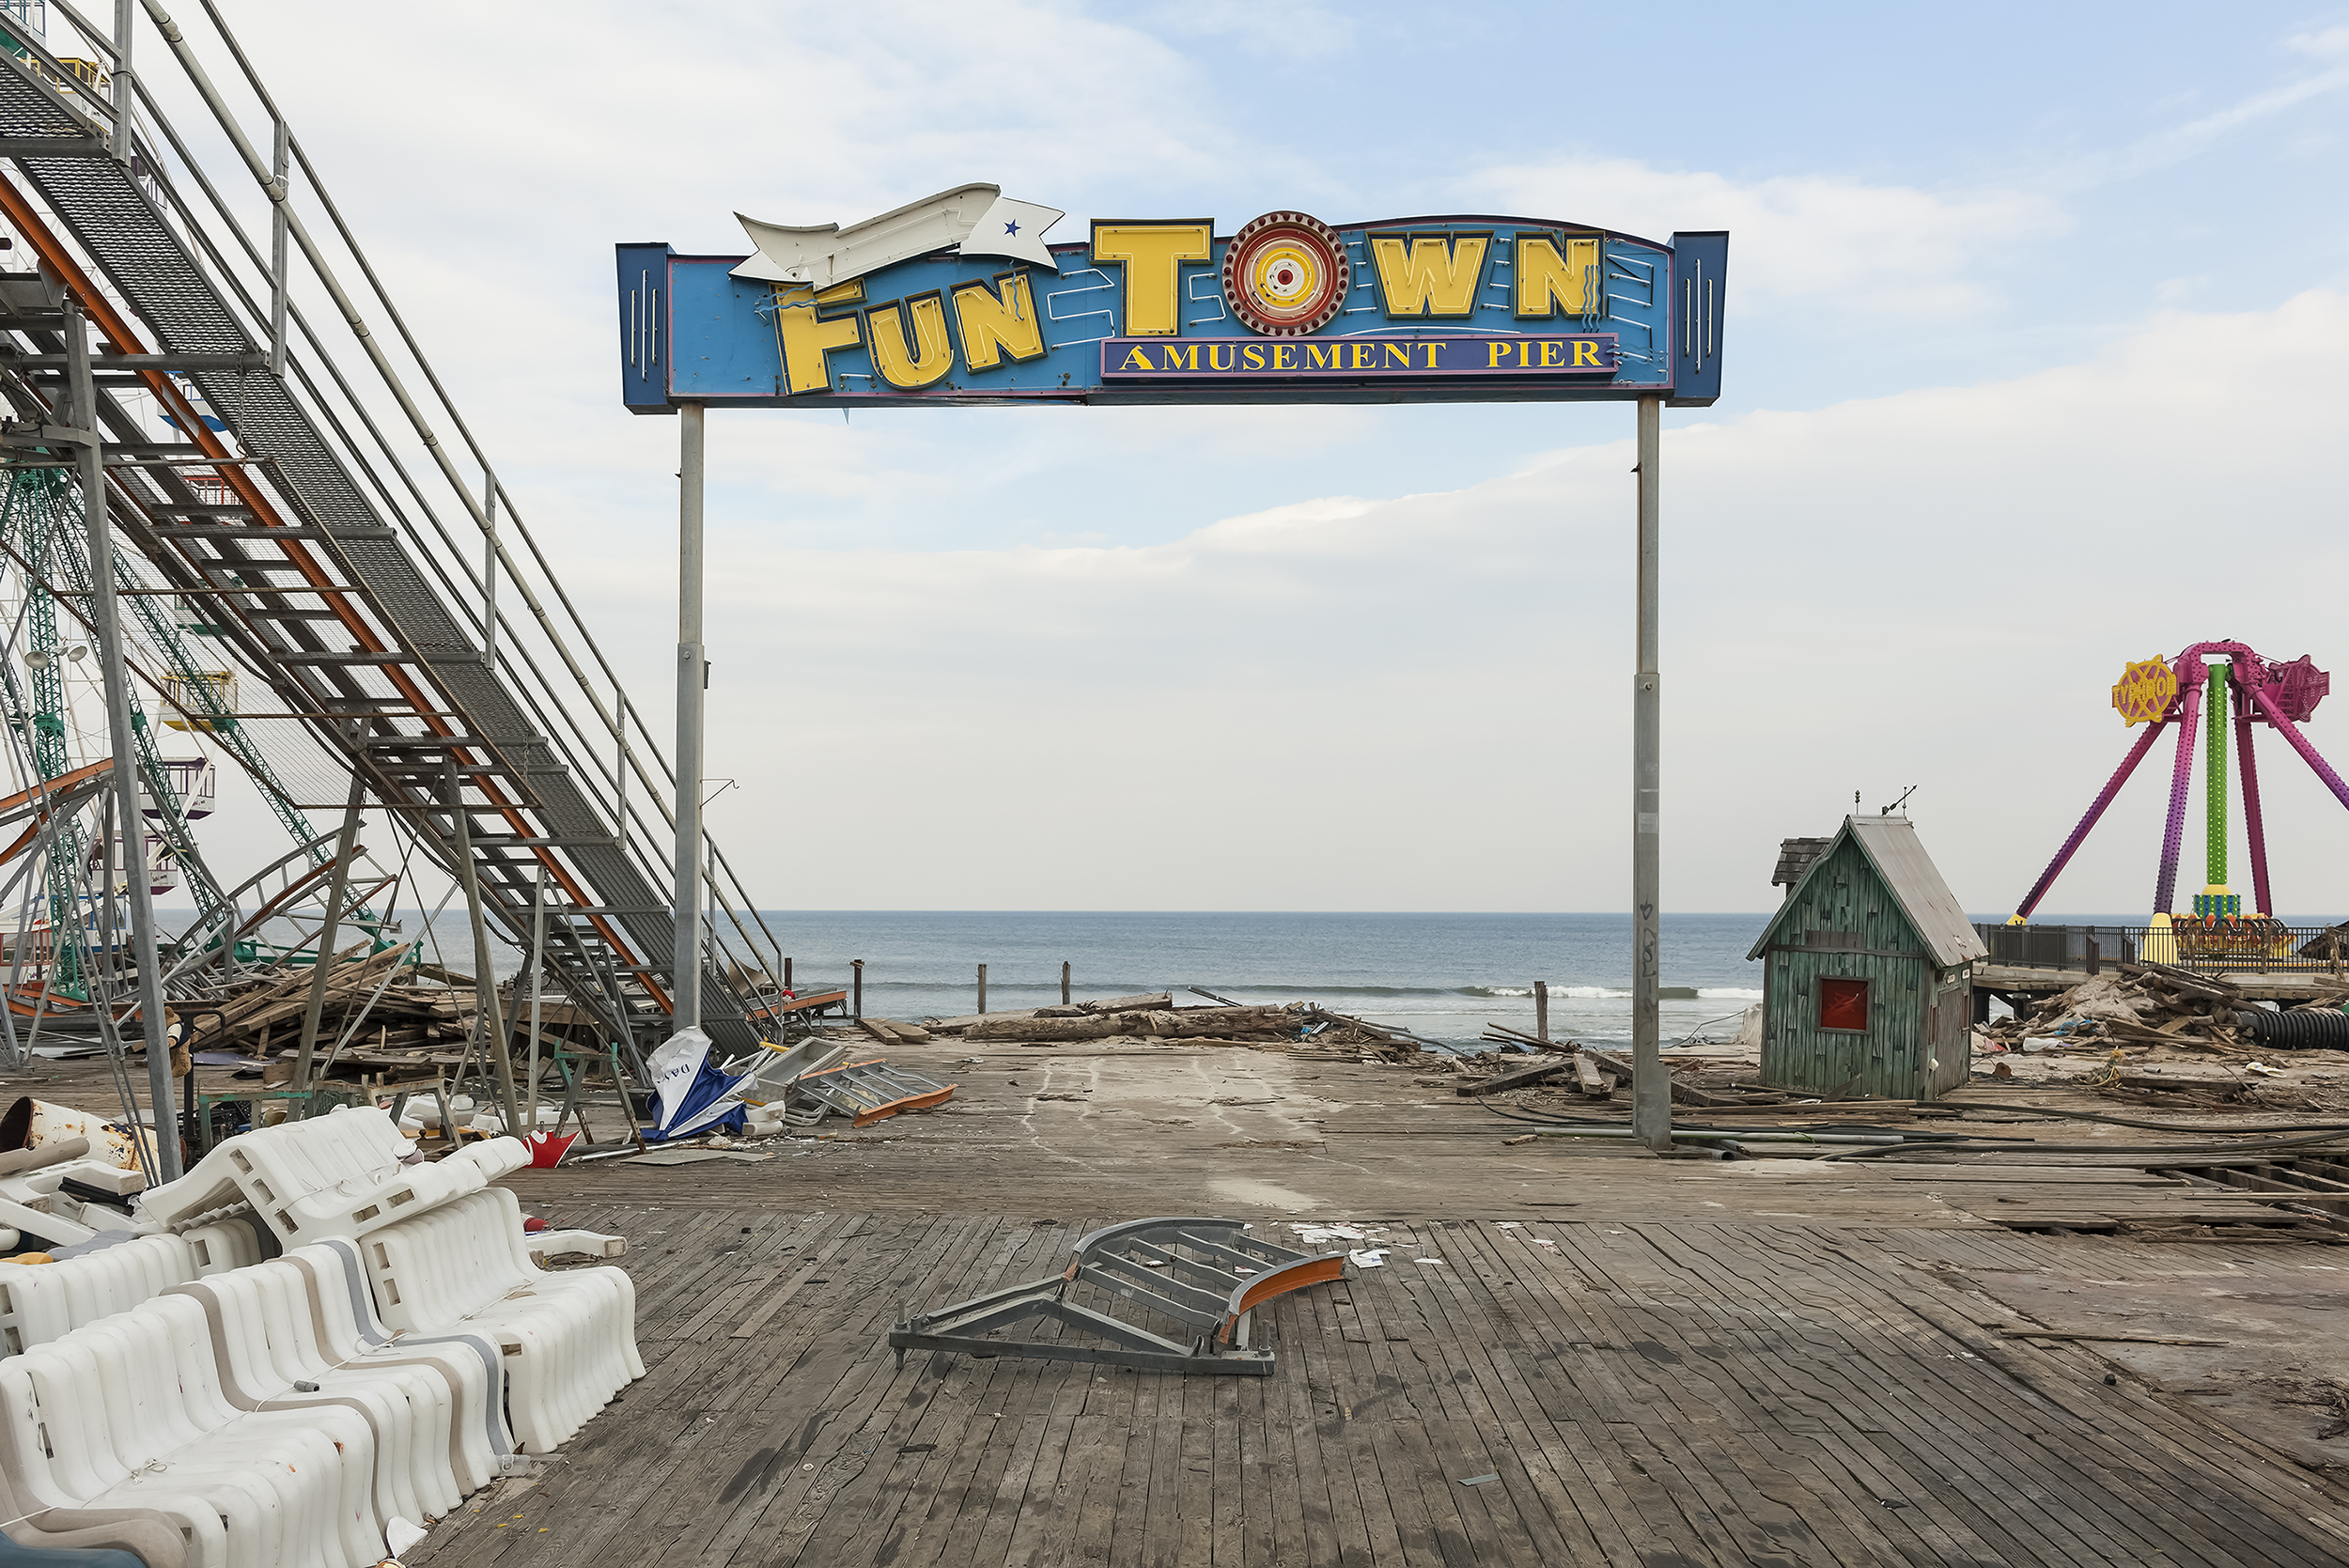 20. Fun Town Amusement Arcade Pier Seaside Park NJ